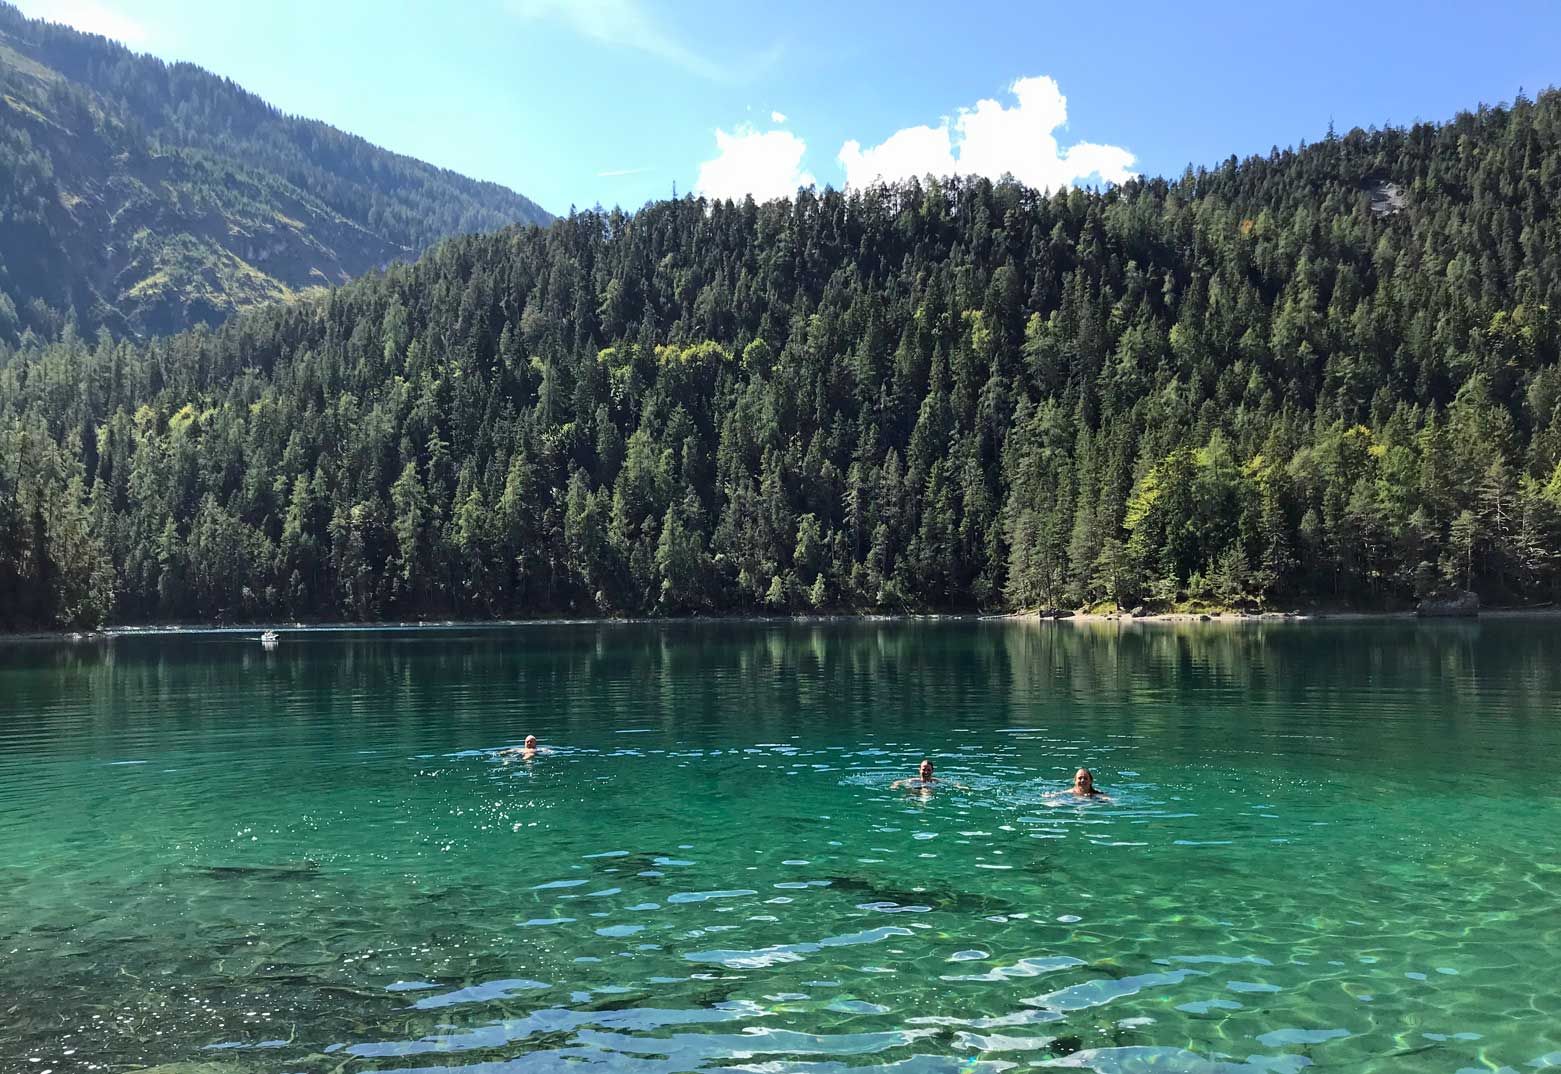 schwimmen-mountainbiken-tiroler-zugspitz-arena-munichmountaingirls